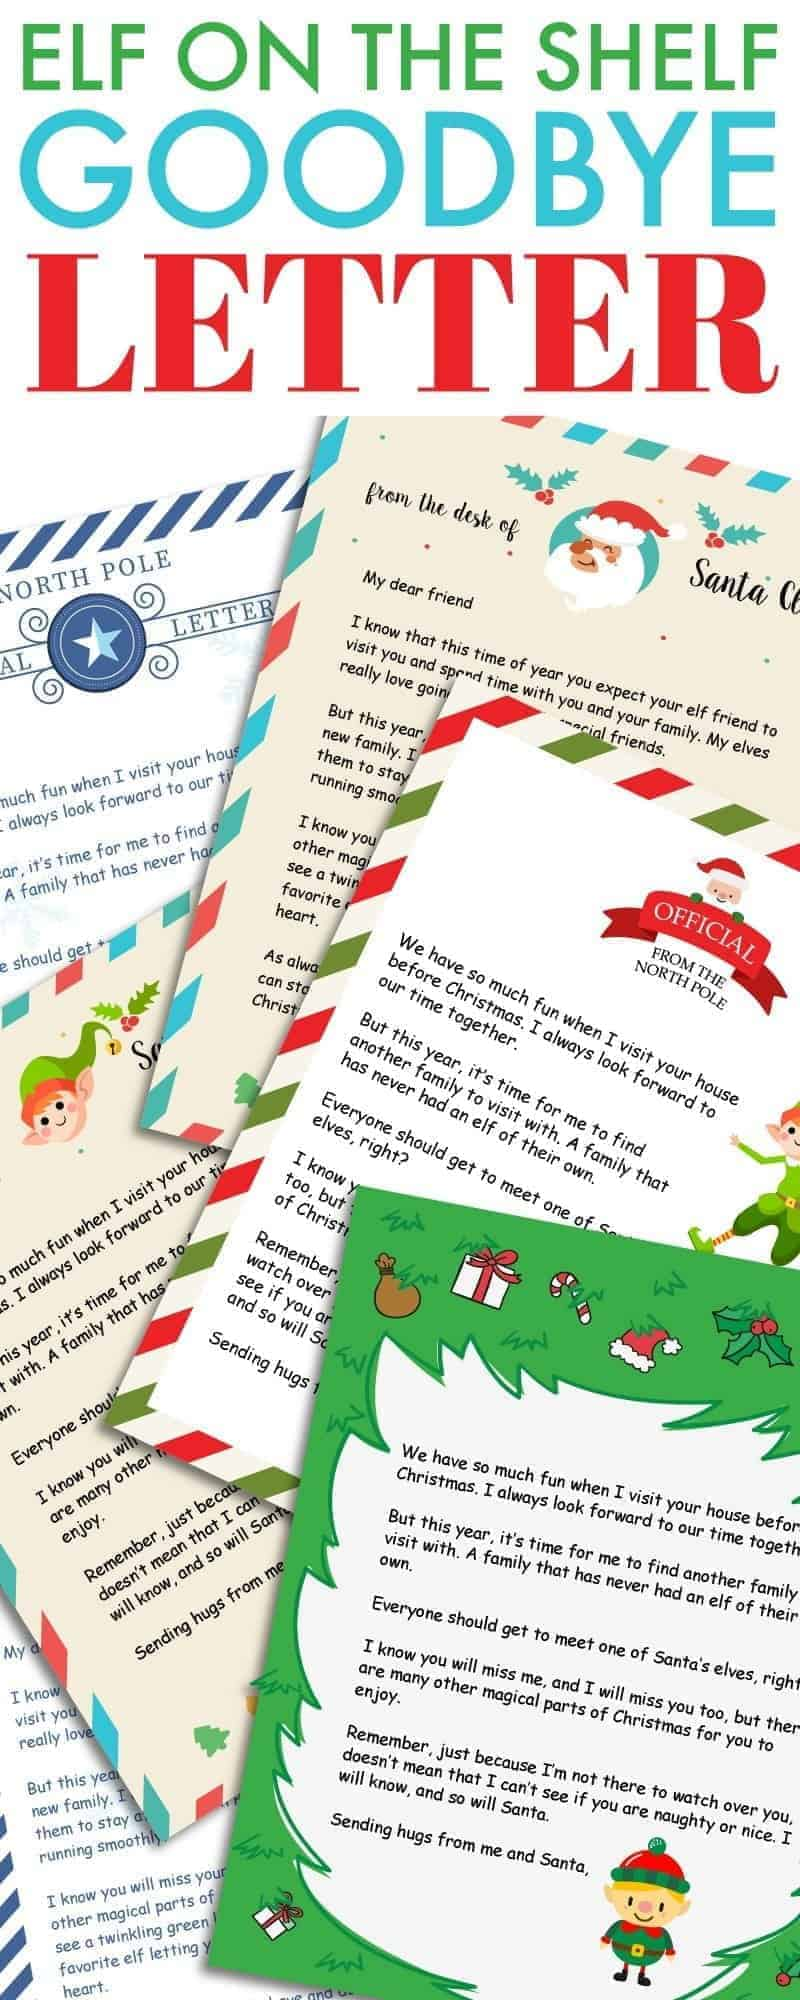 photo about Printable Elf on the Shelf Letter named Elf upon the Shelf Goodbye Letter - Absolutely free Printable - 730 Sage